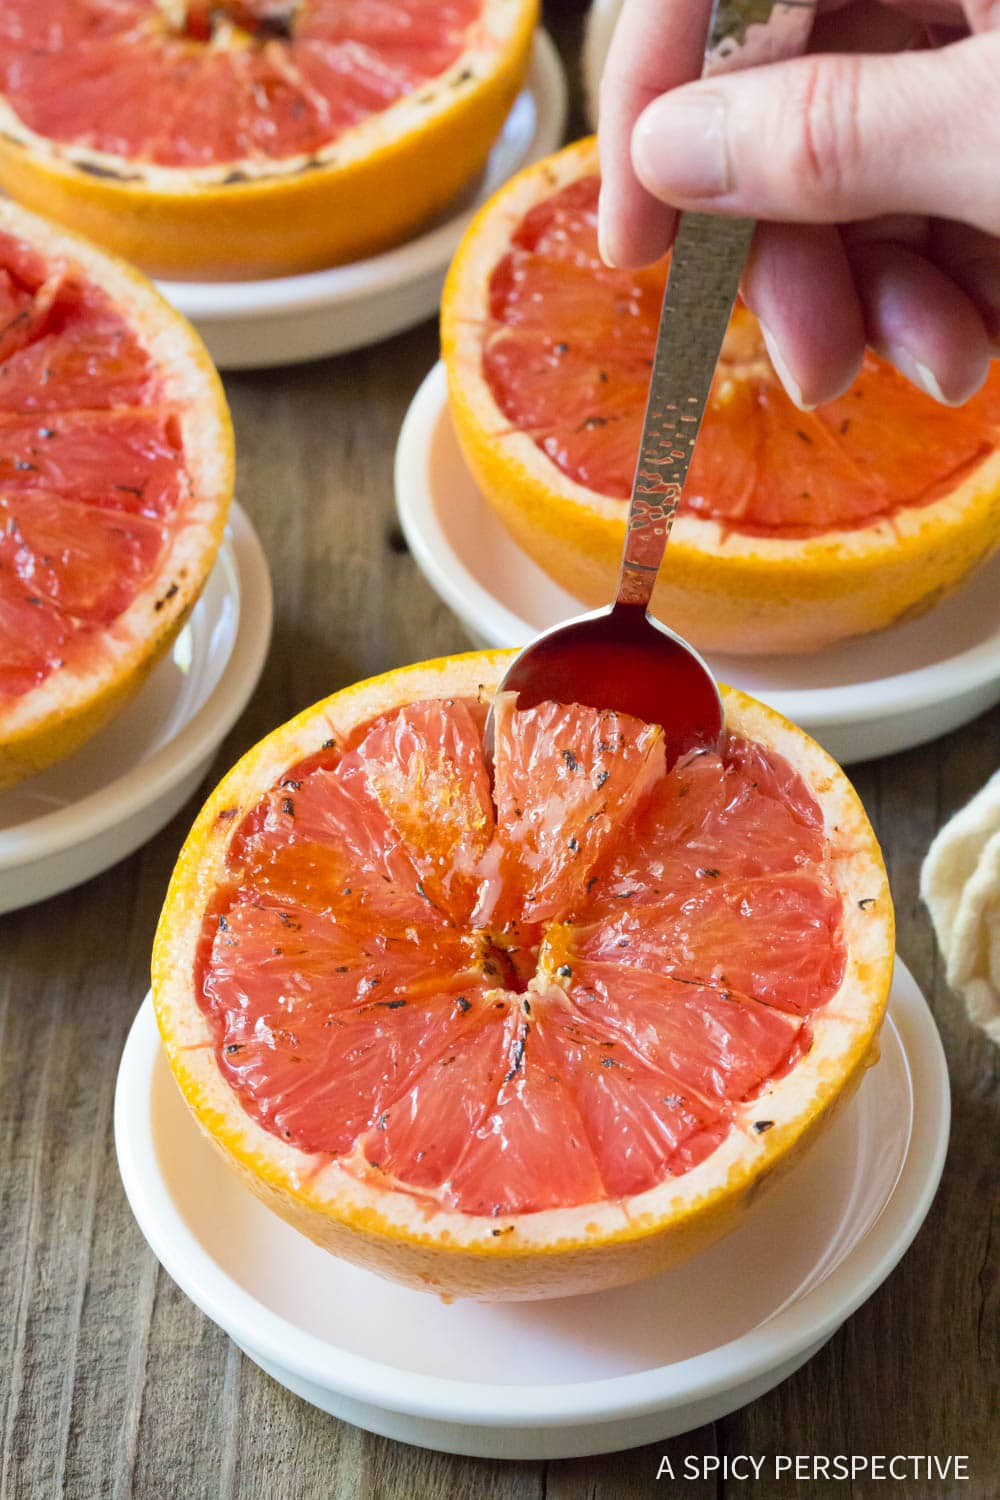 Simple Bruleed Grapefruit (Pamplemousse Brûlé) Recipe #ASpicyPerspective #vegan #vegetarian #healthy